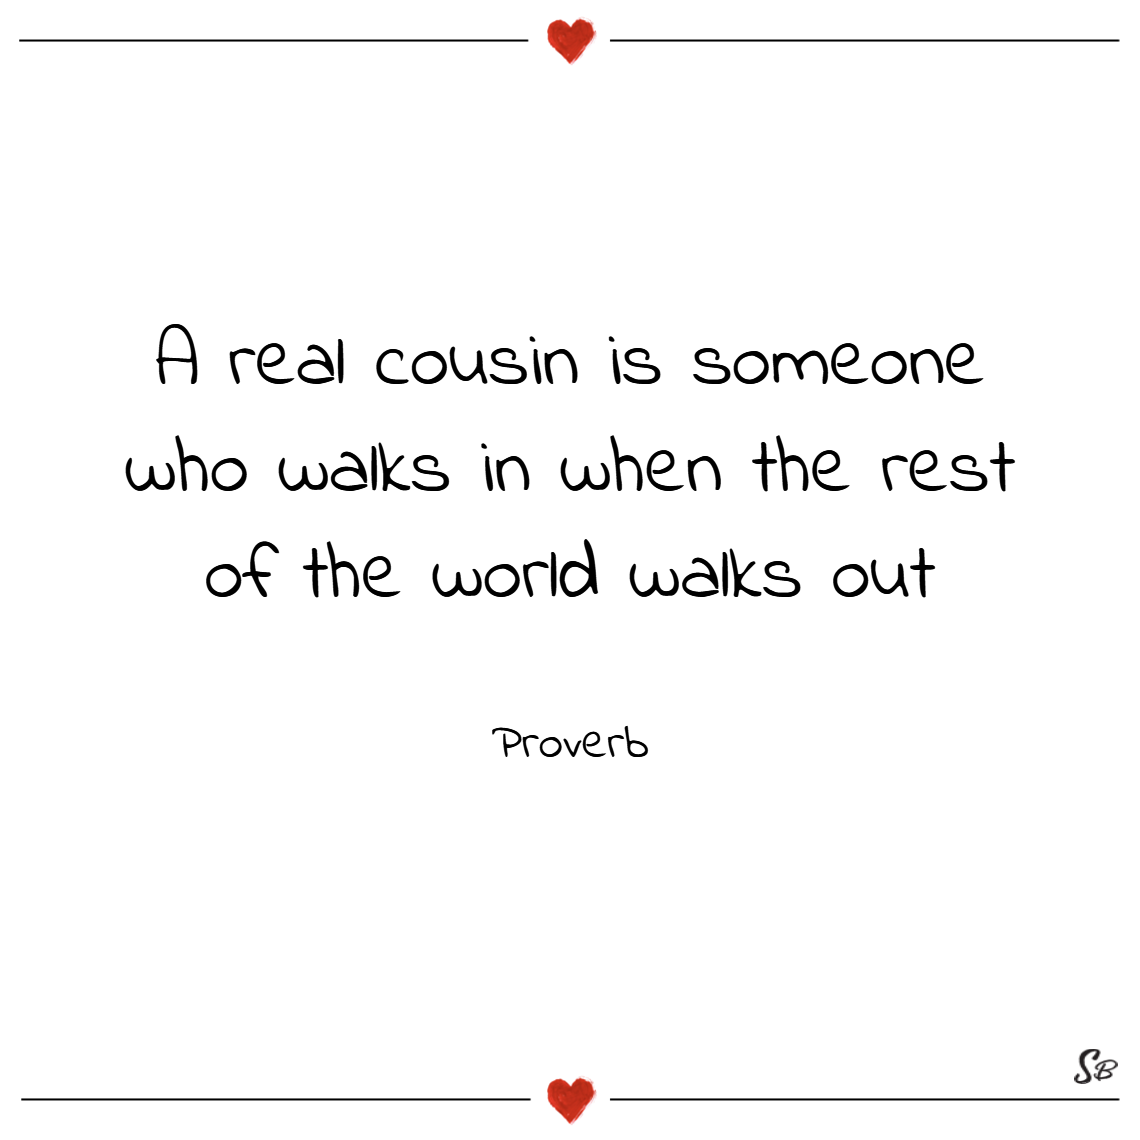 A real cousin is someone who walks in when the rest of the world walks out. – proverb